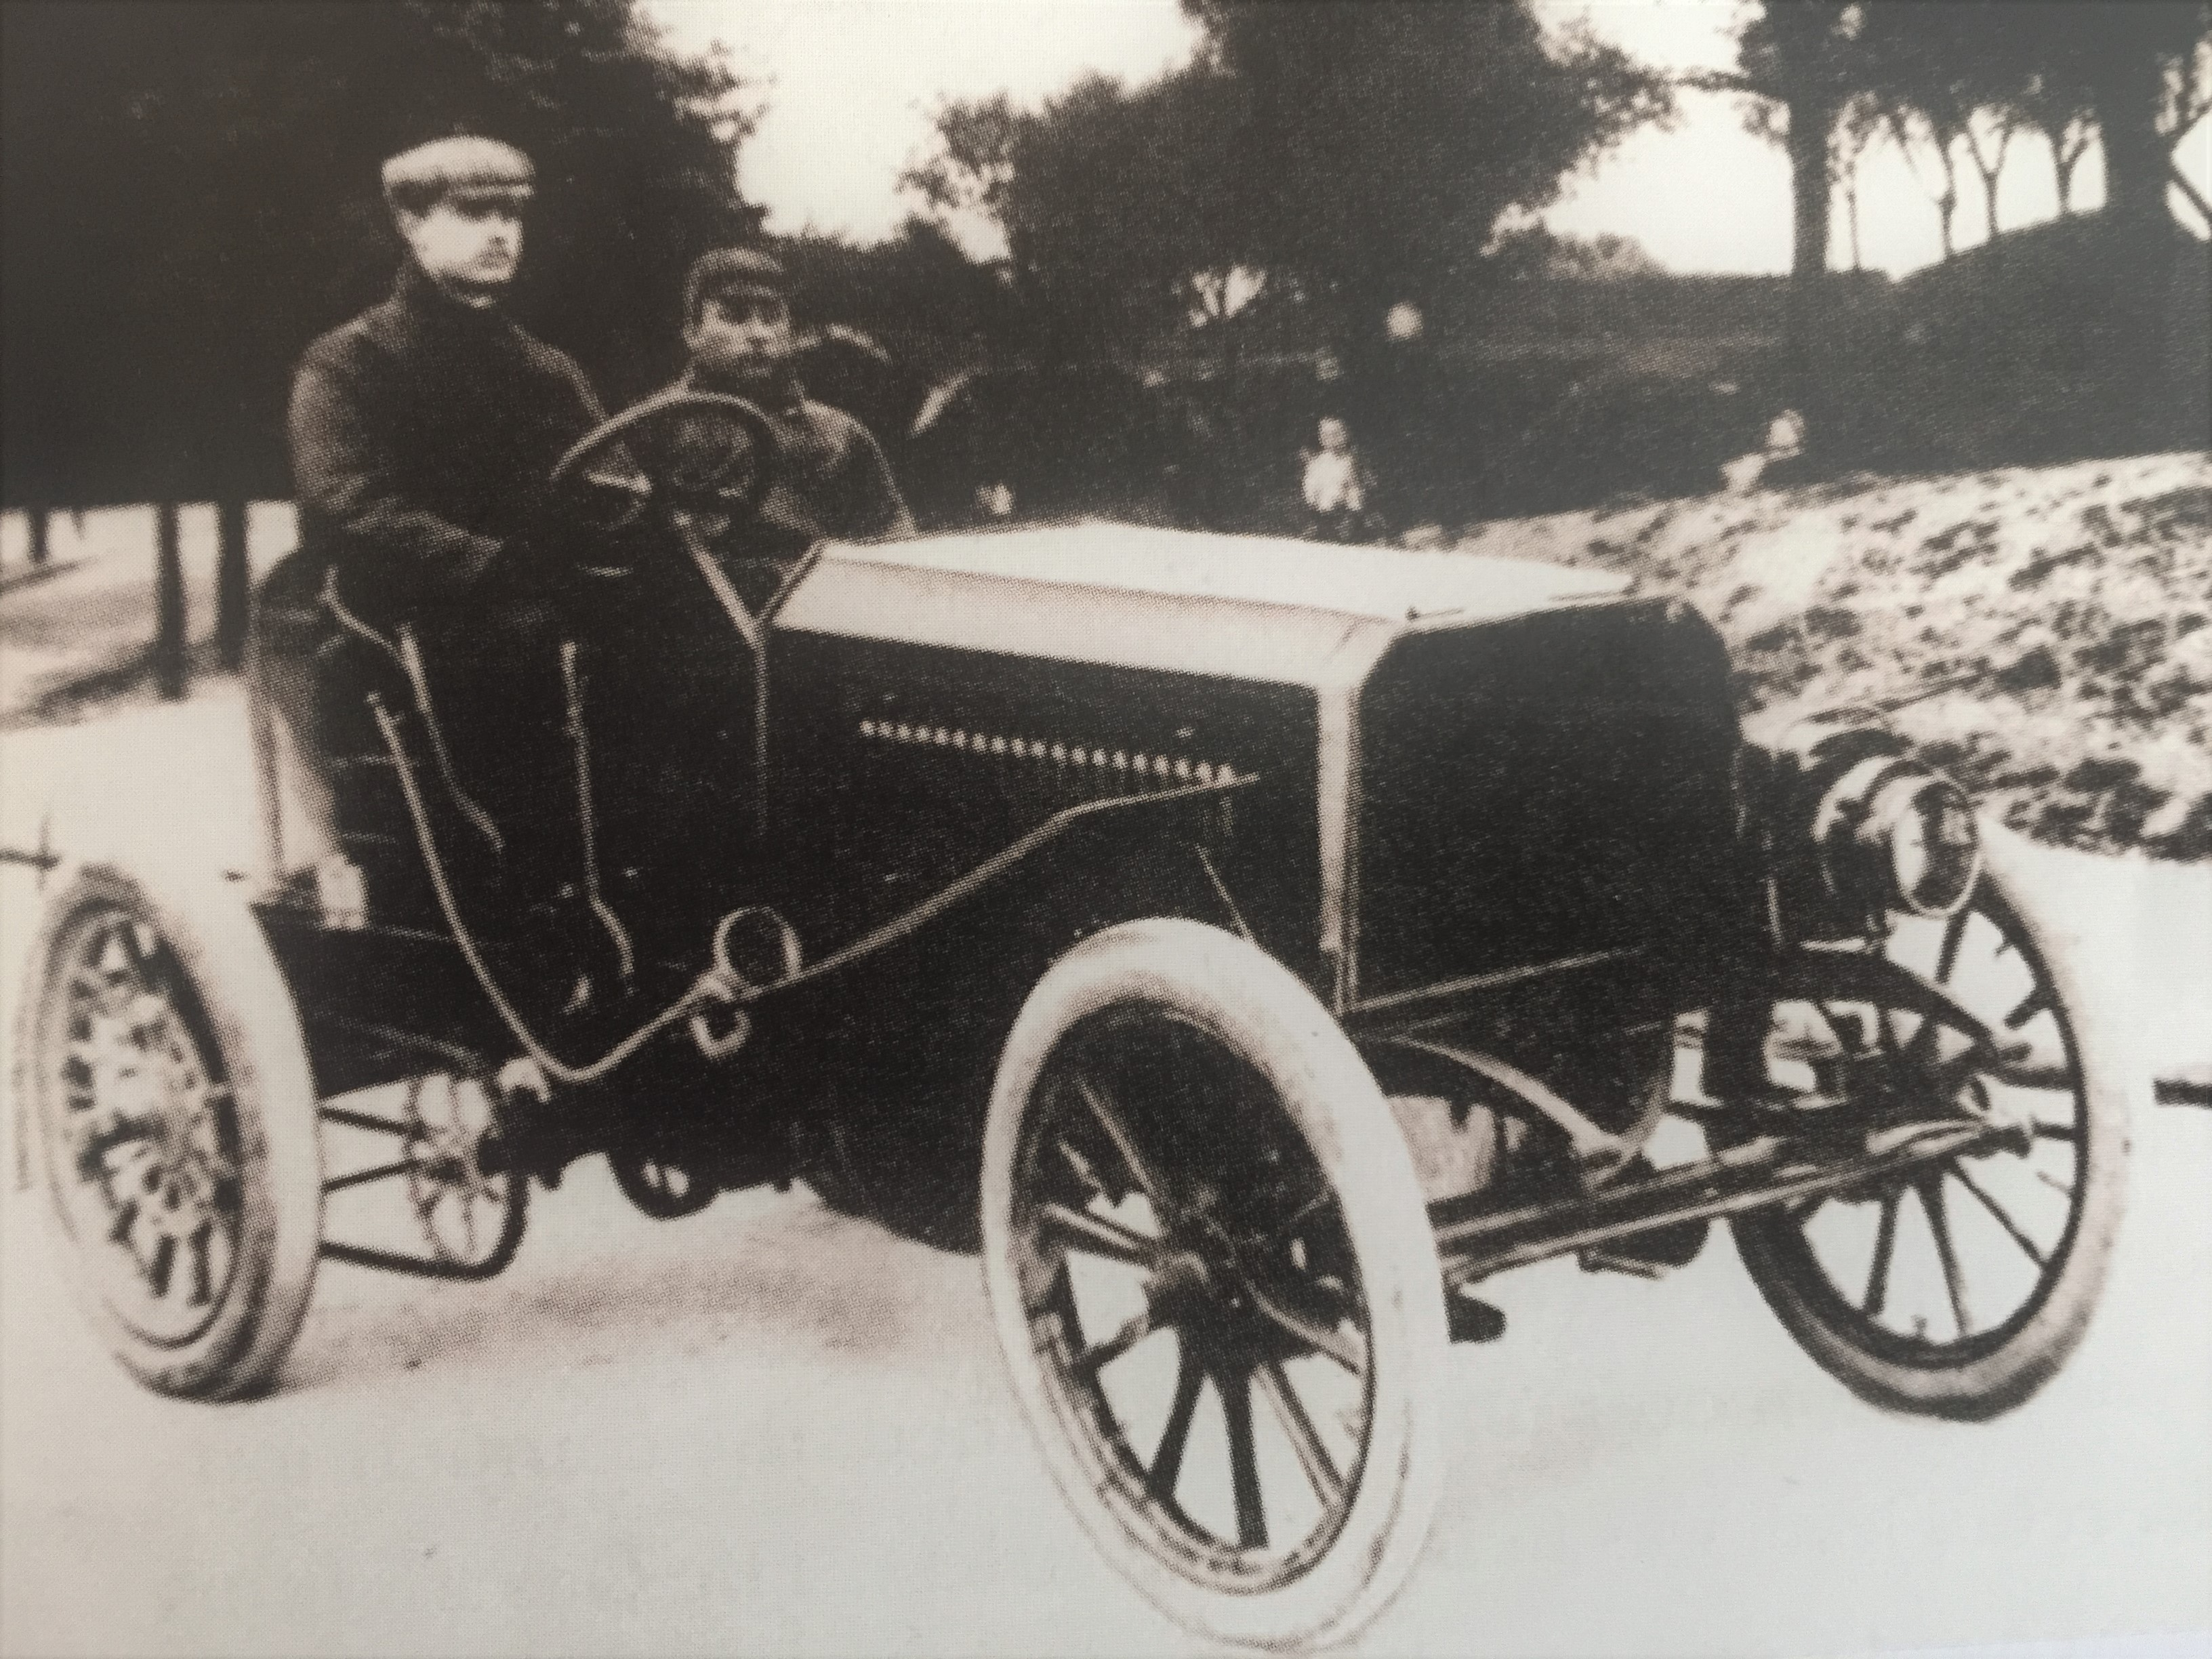 C.S. Rolls in his car at the 1,000 miles trial